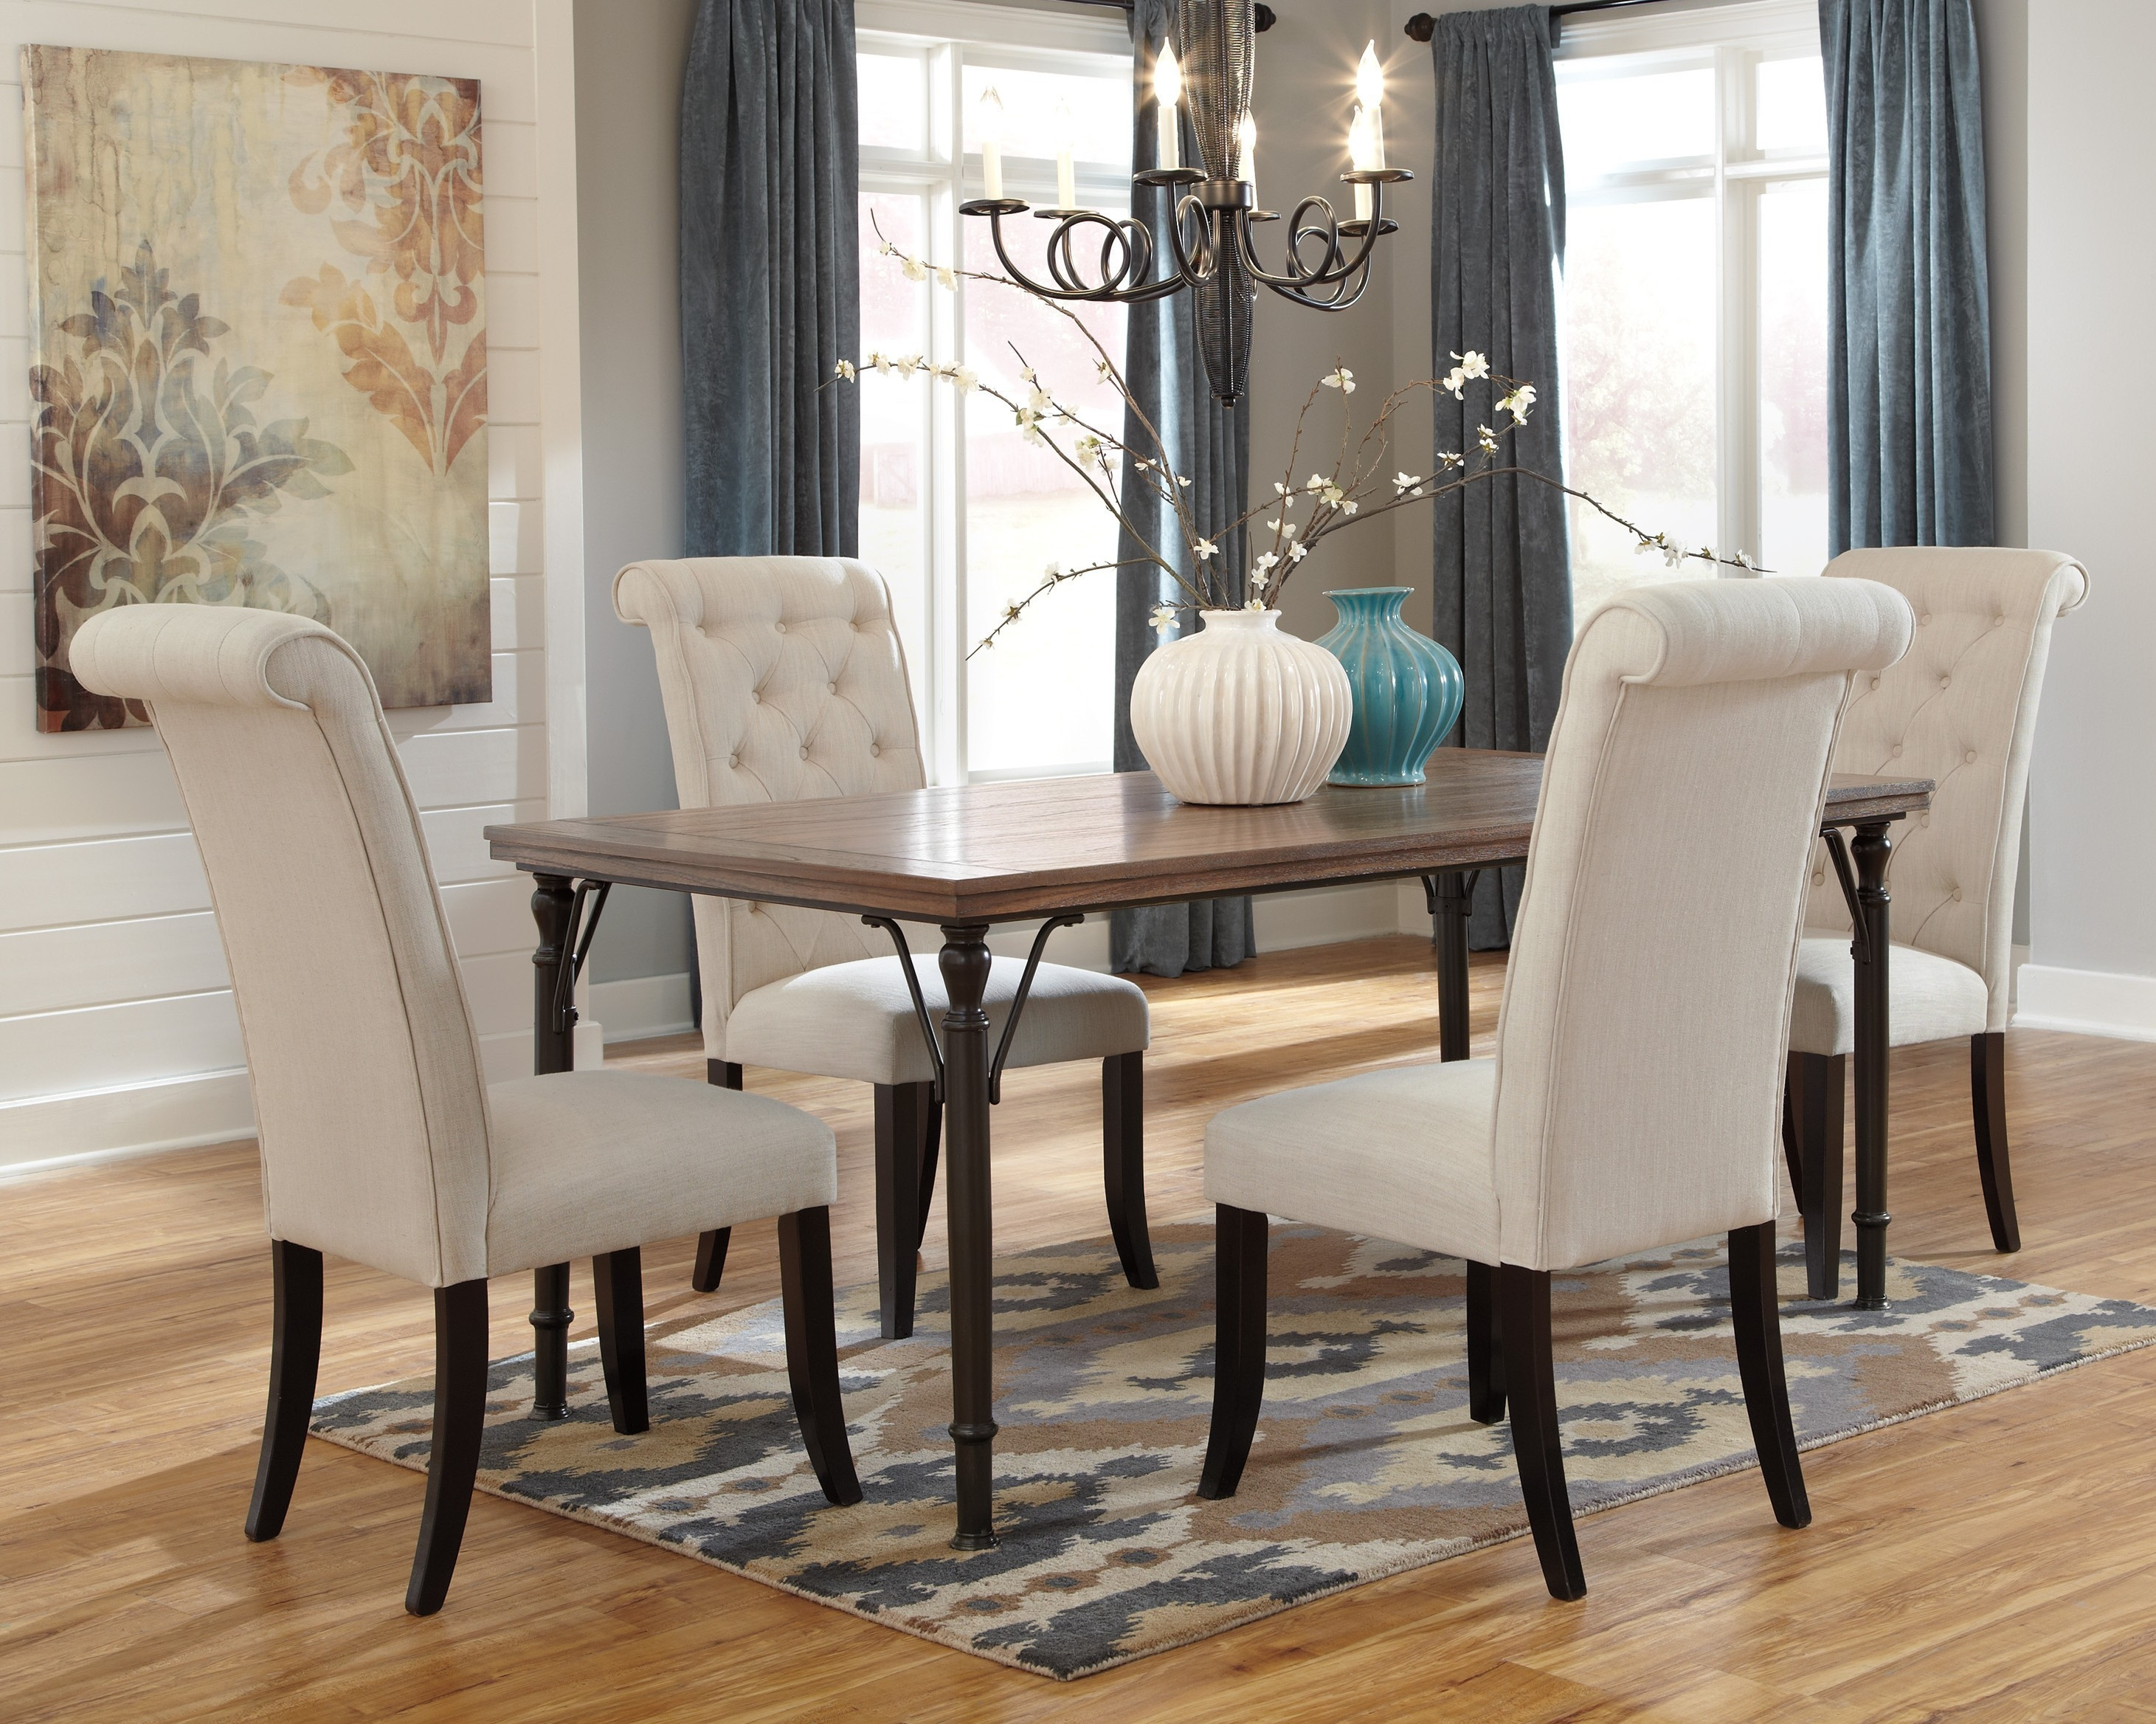 Dining Room Chairs Ashley